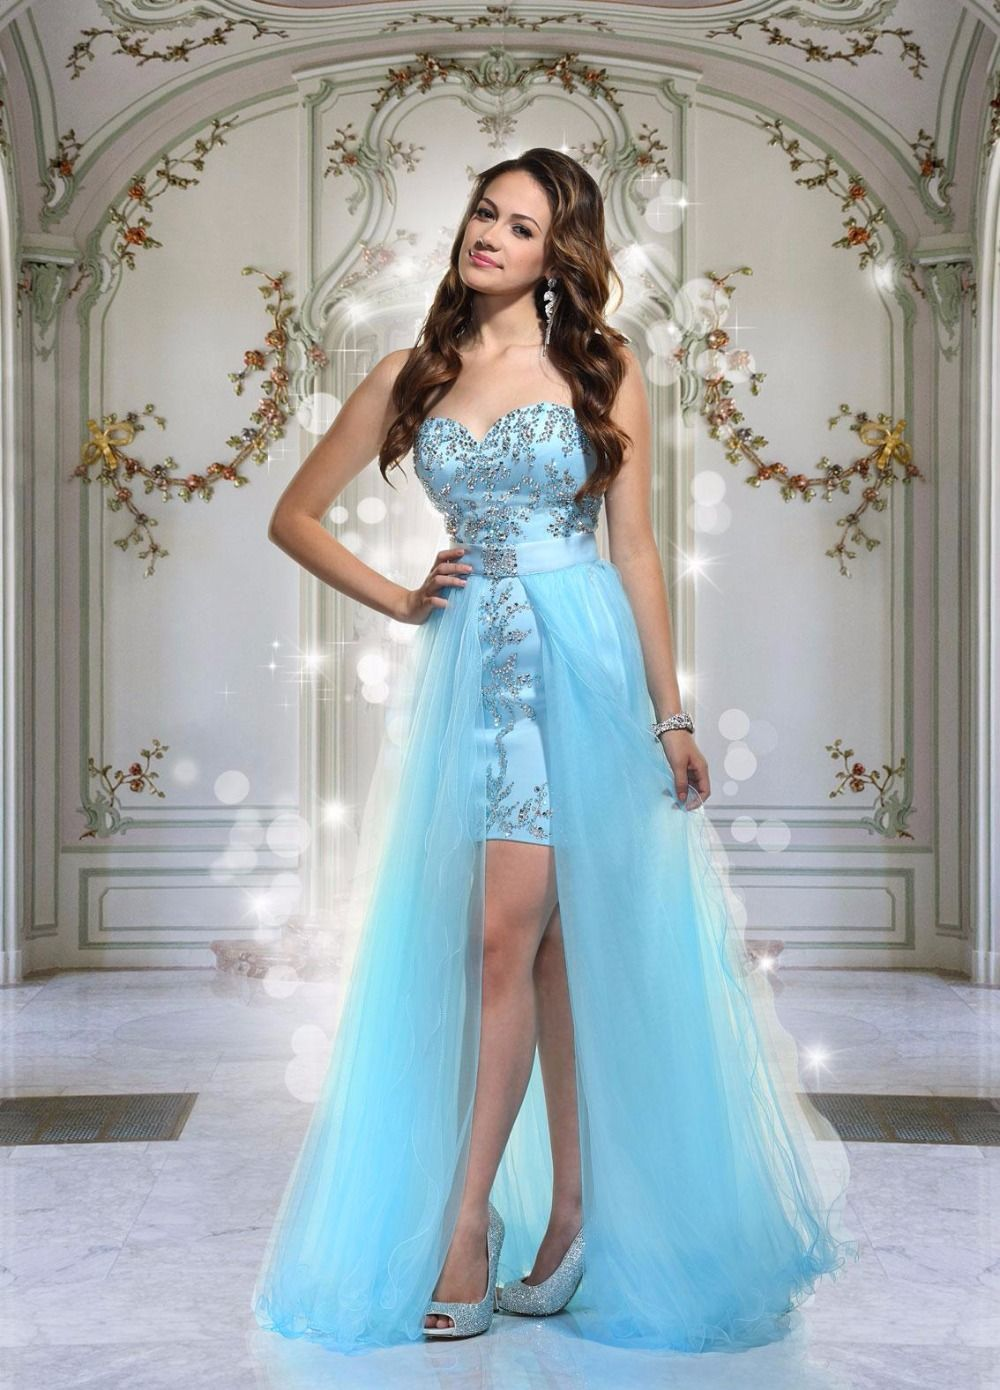 Compare Prices on Cinderella Prom Dress- Online Shopping/Buy Low ...